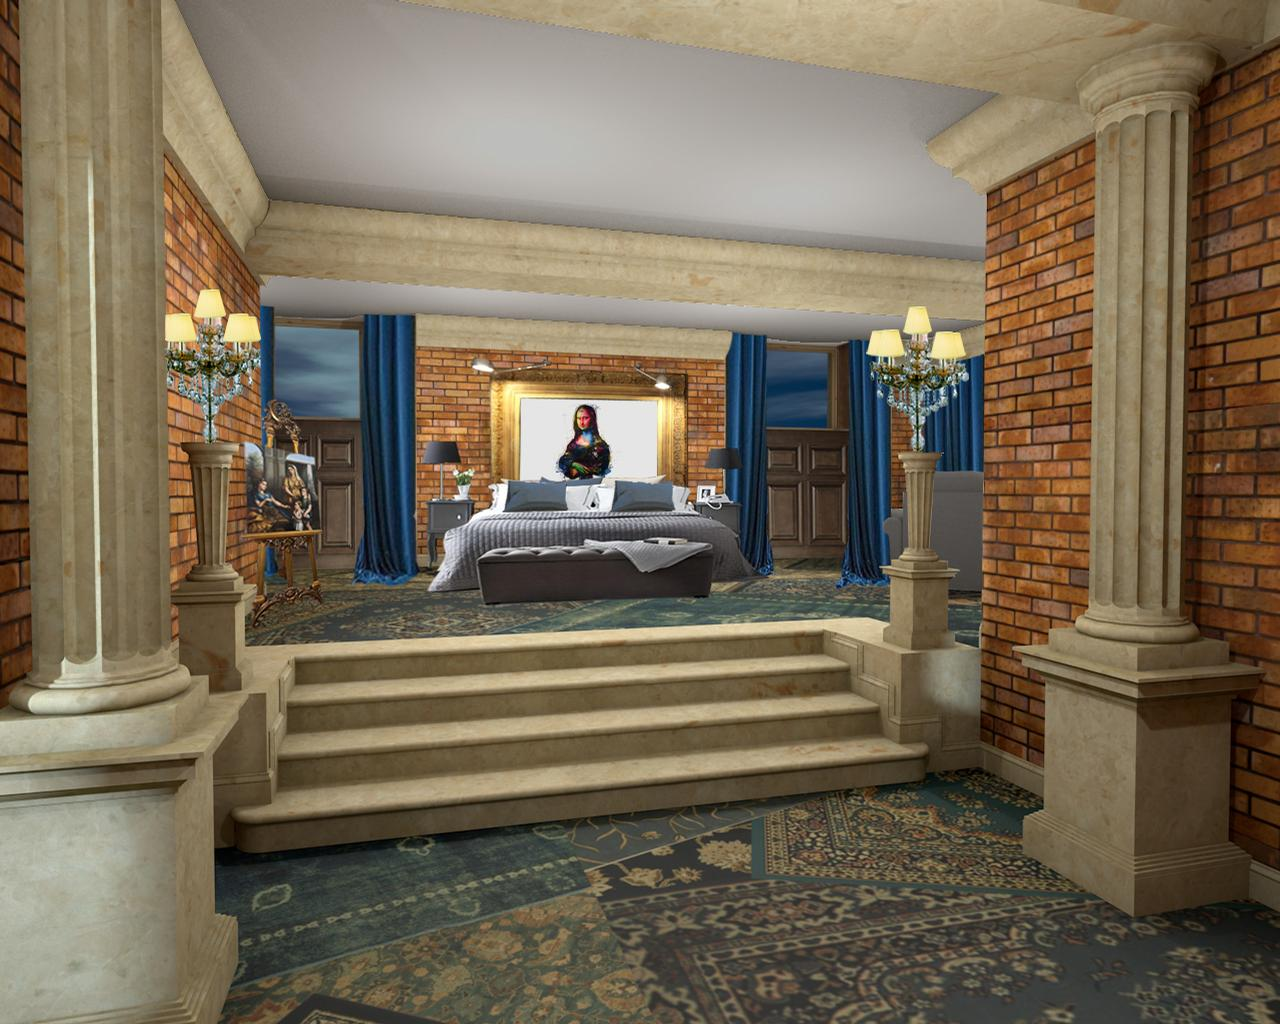 The Mystery Hotel Budapest is on track to open next month. / Courtesy of Preferred Hotels & Resorts